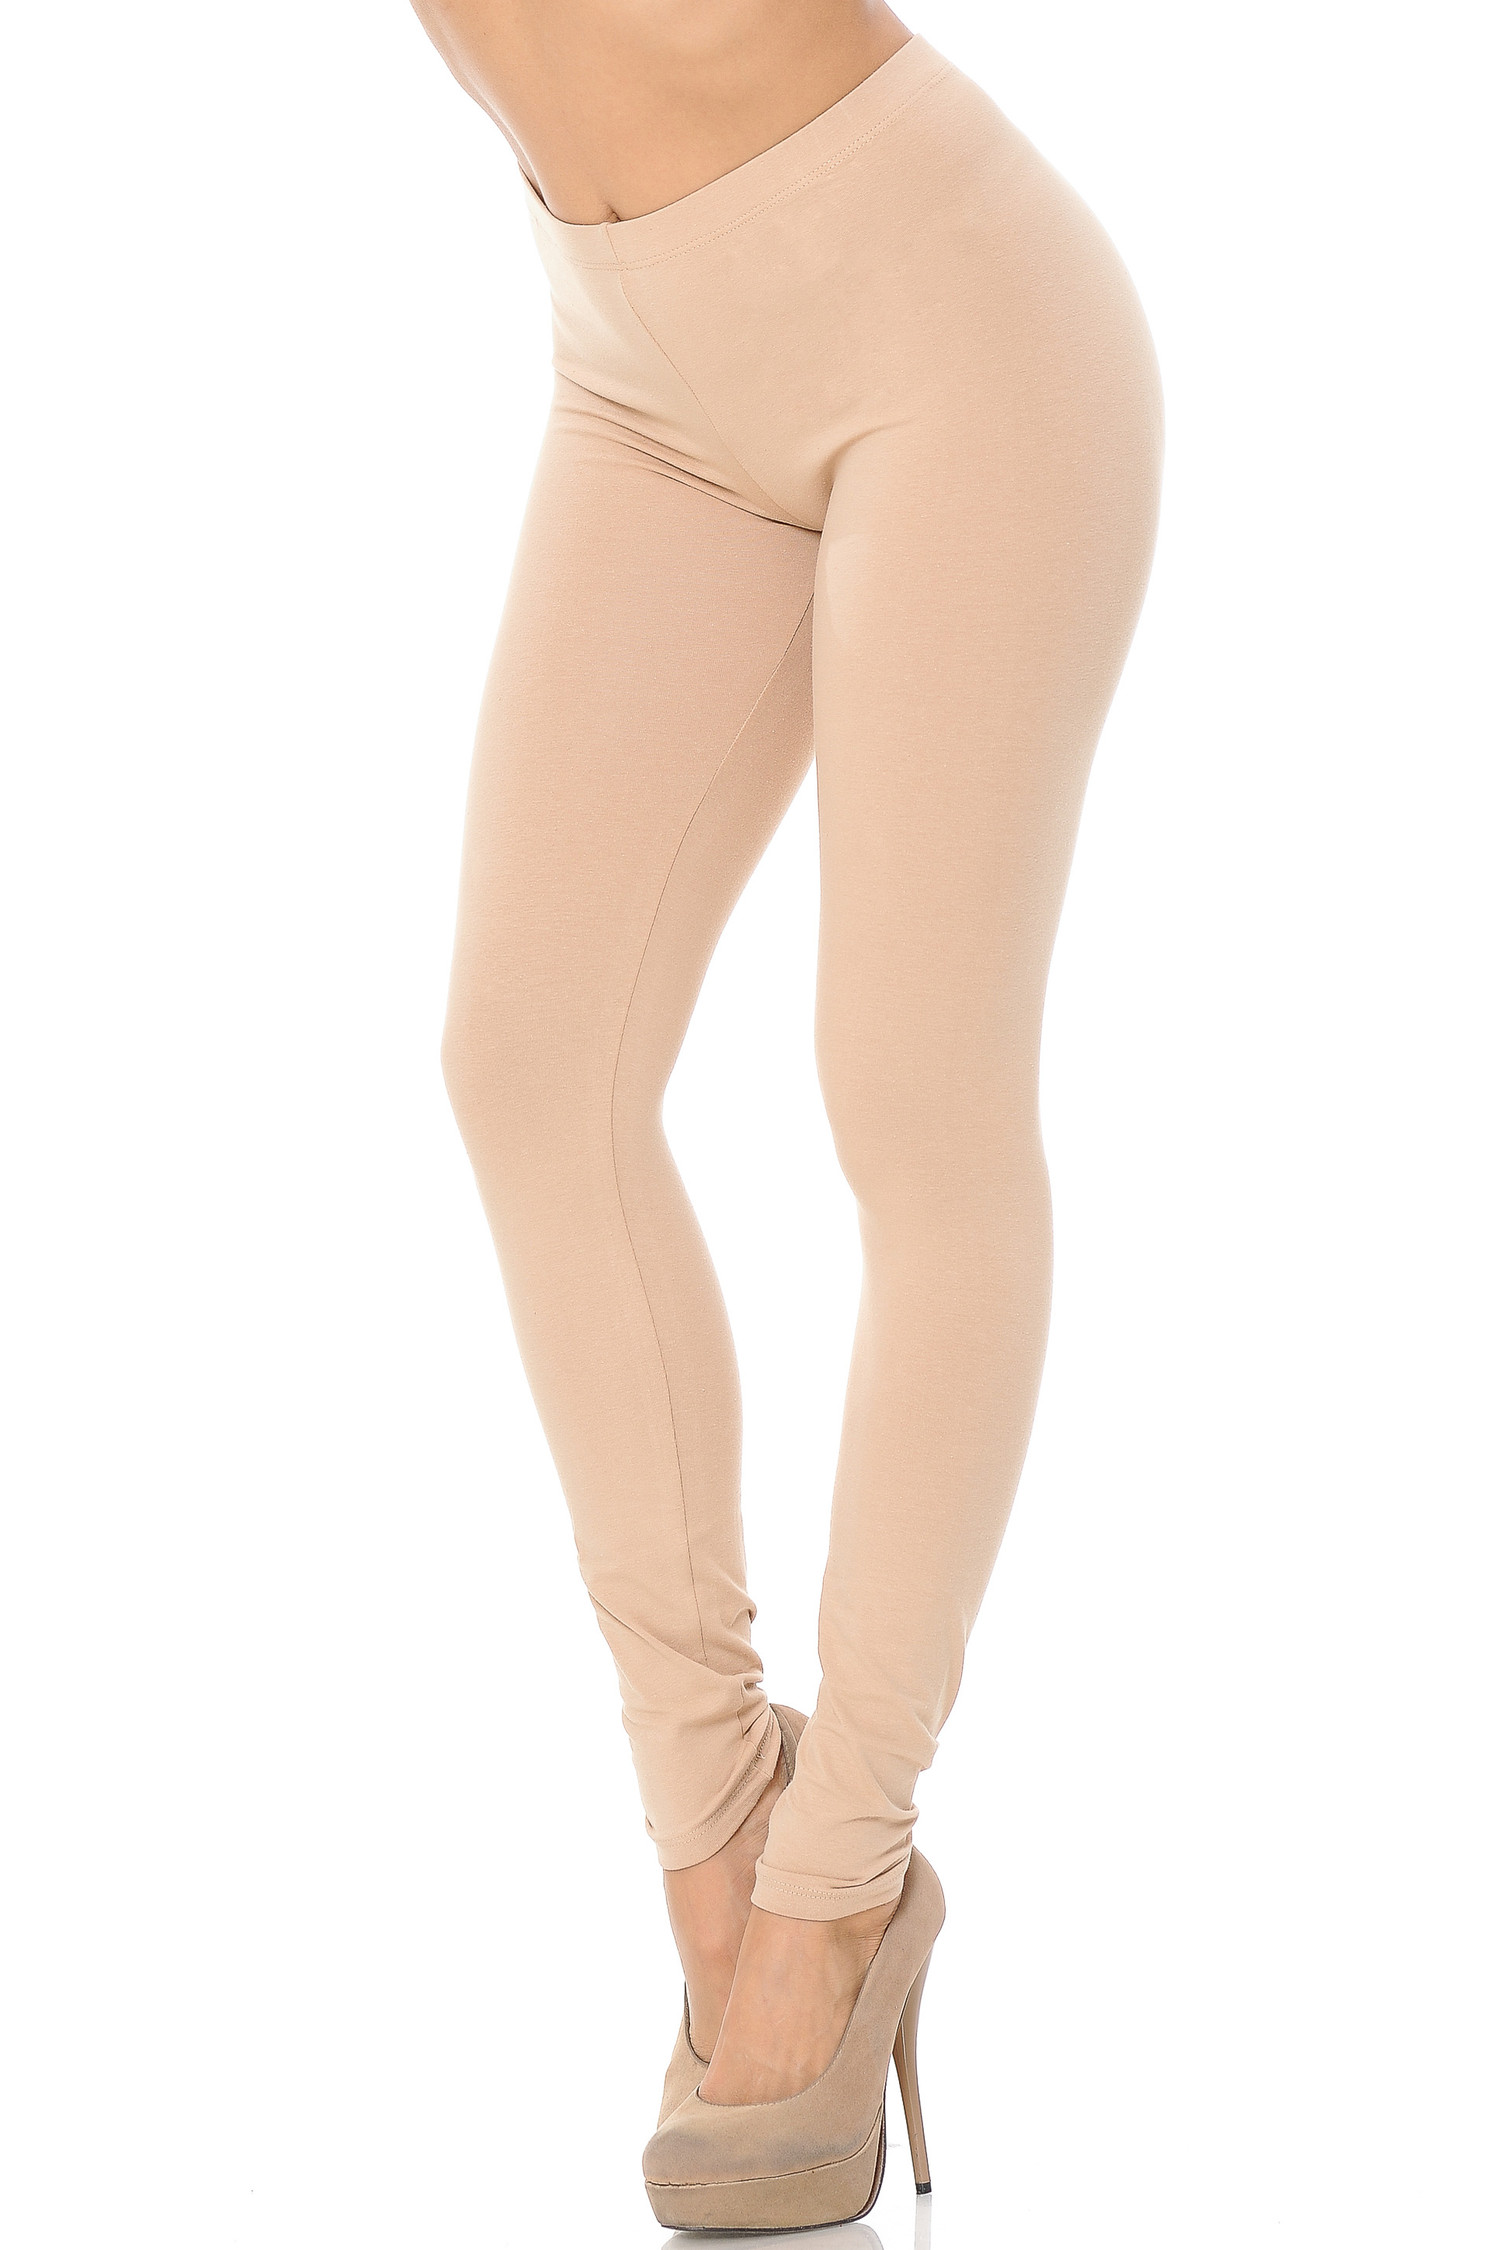 45 degree angle image of female model wearing a beige pair of made in the USA cotton leggings showing  a just below the belly button rise and full length going to the ankles.